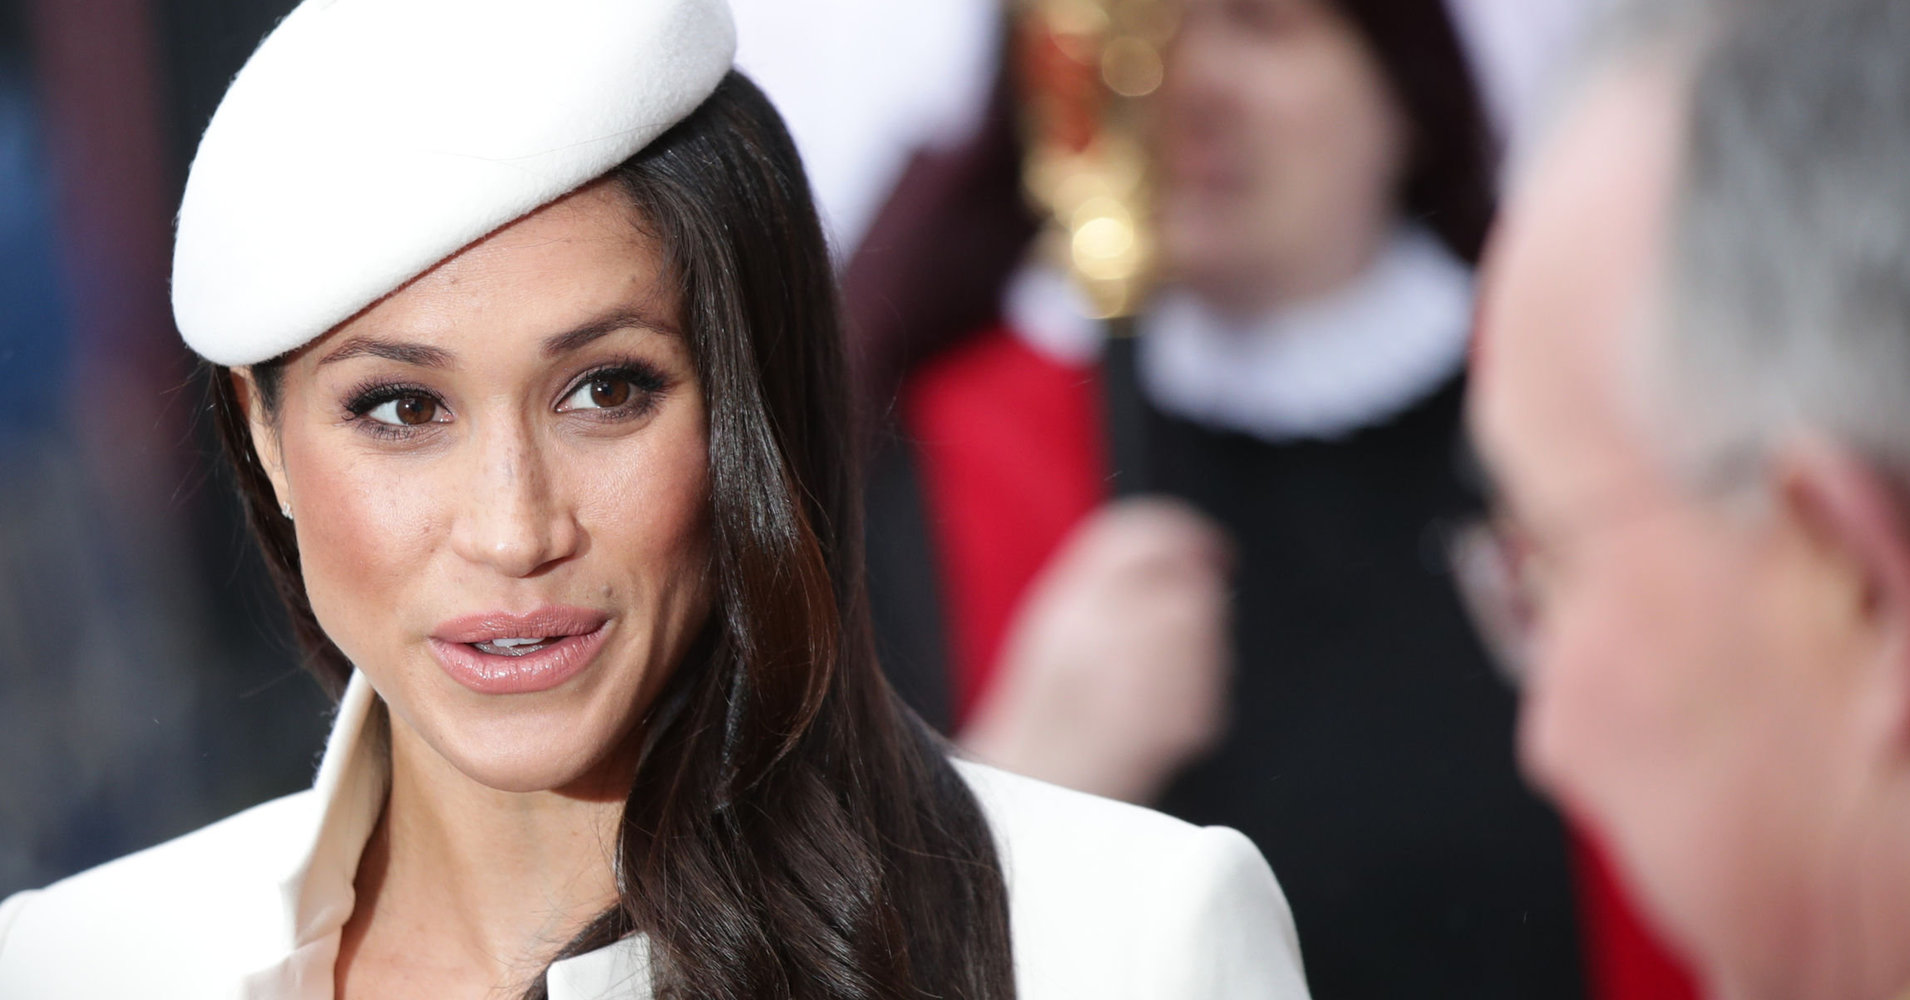 Body Language Experts Dissect Meghan Markle's First Event With The Queen